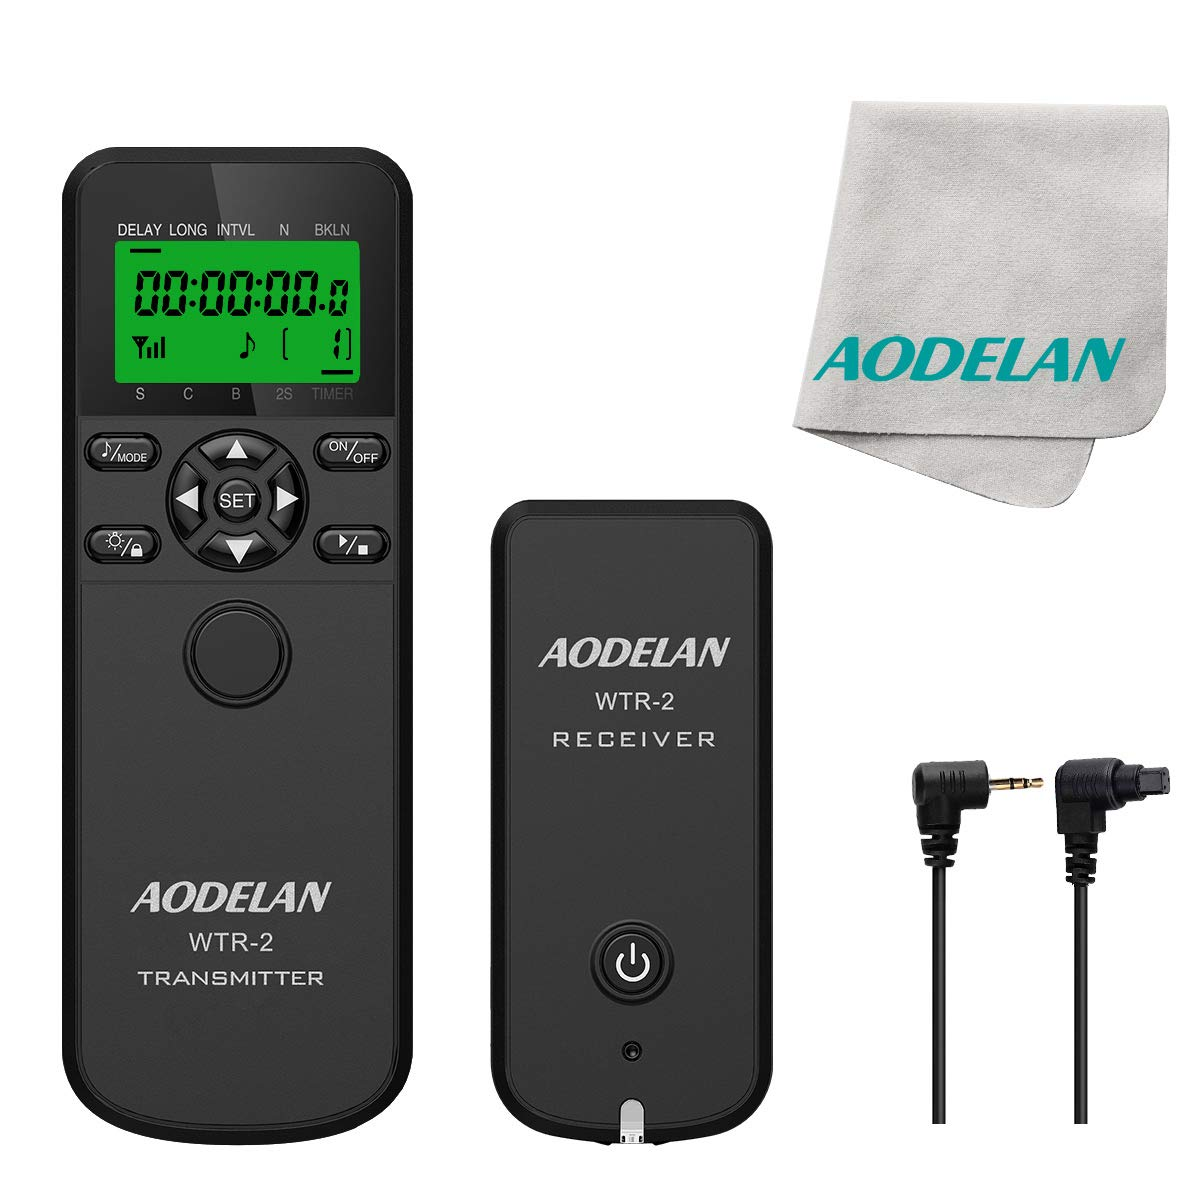 AODELAN Wireless Shutter Remote Release Control for Nikon D5200, D3100, D5000, D7200, D600, D610, D750, D3200, D3300 by AODELAN